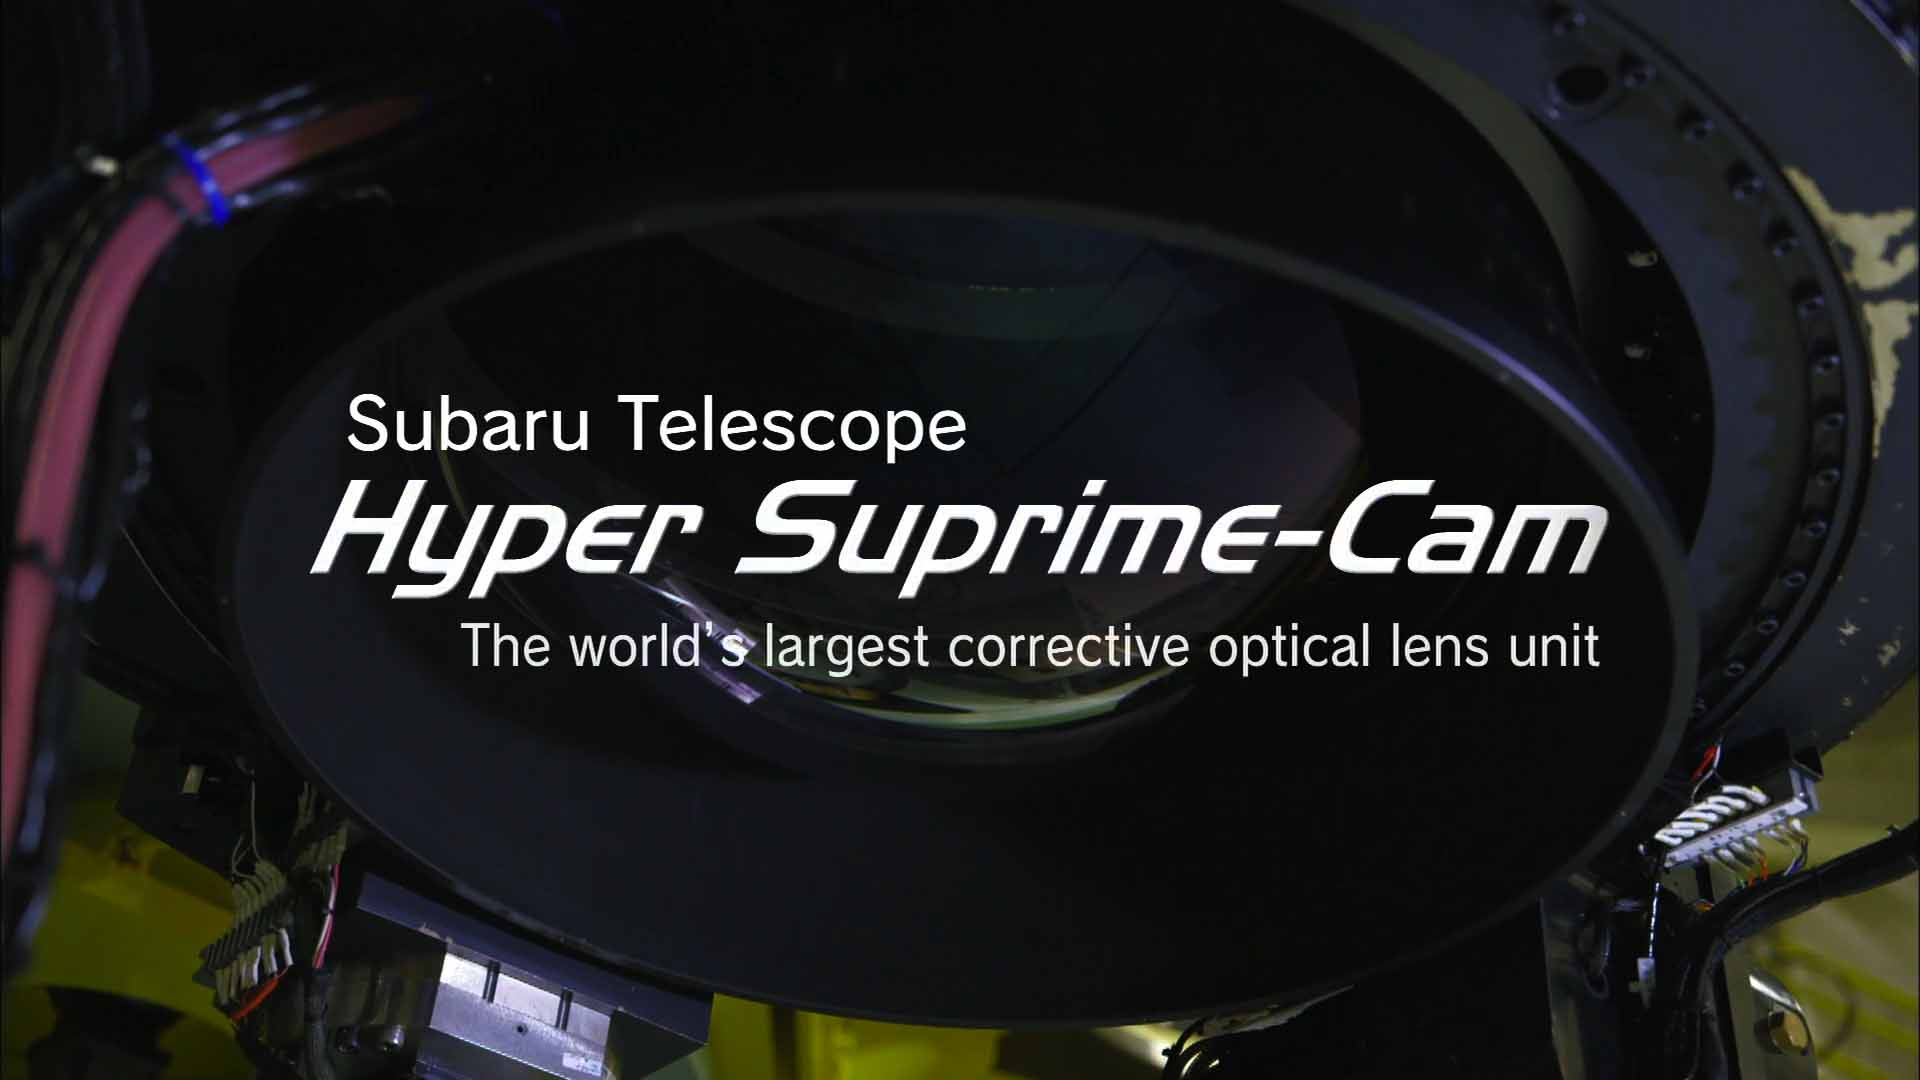 The Subaru Telescope and Hyper Suprime-Cam / English